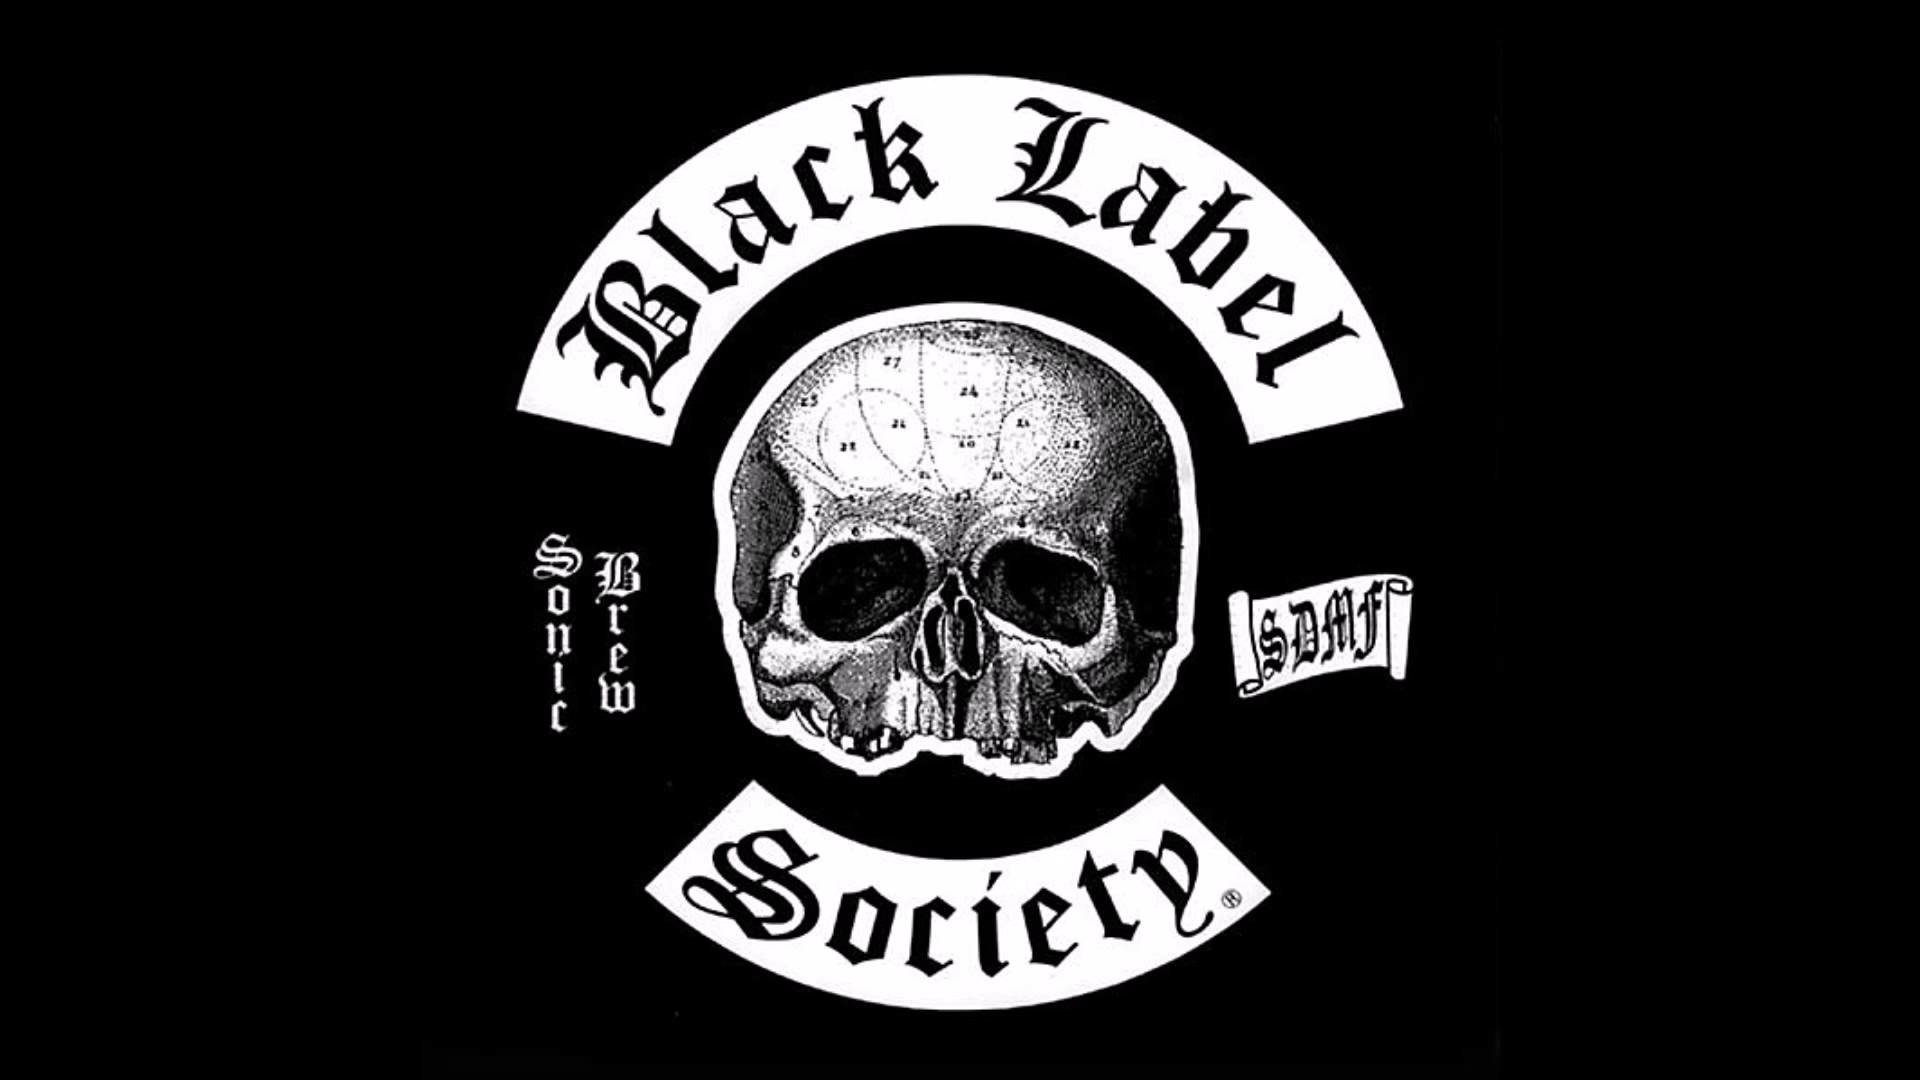 Best Looking Cars Wallpapers Black Label Society Wallpaper 59 Images